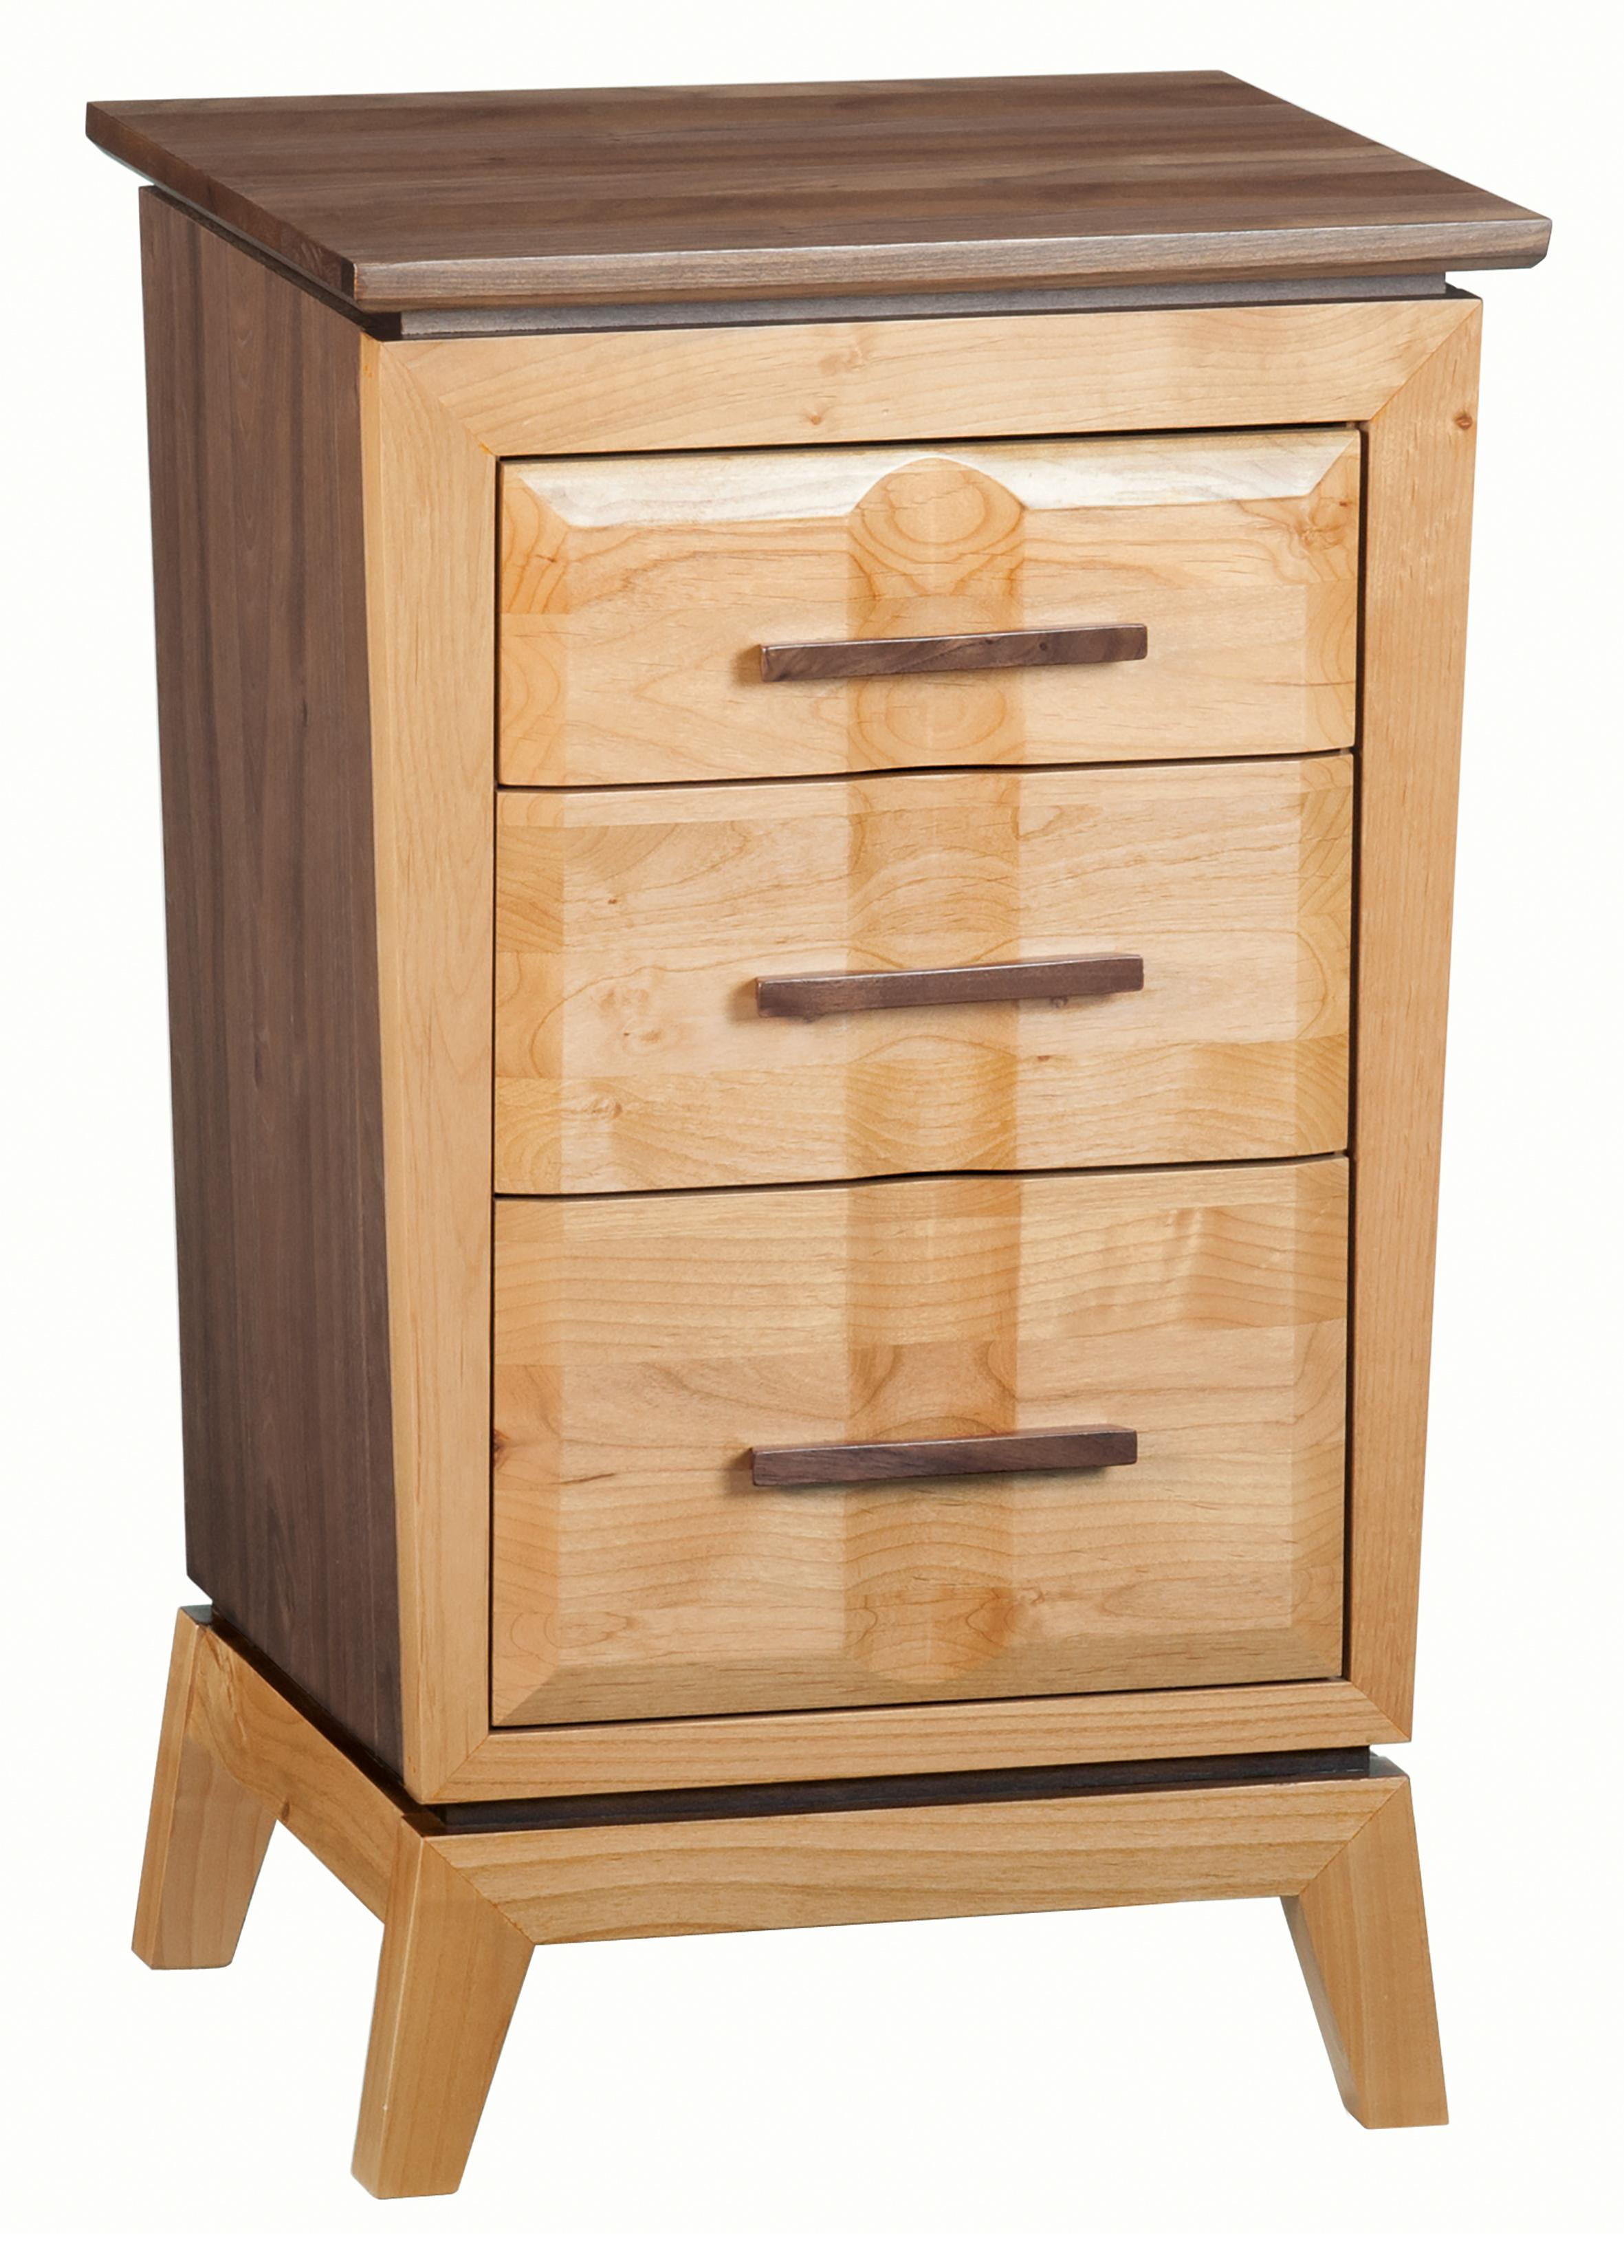 Whittier WoodDuet Small 3-Drawer Addison Nightstand